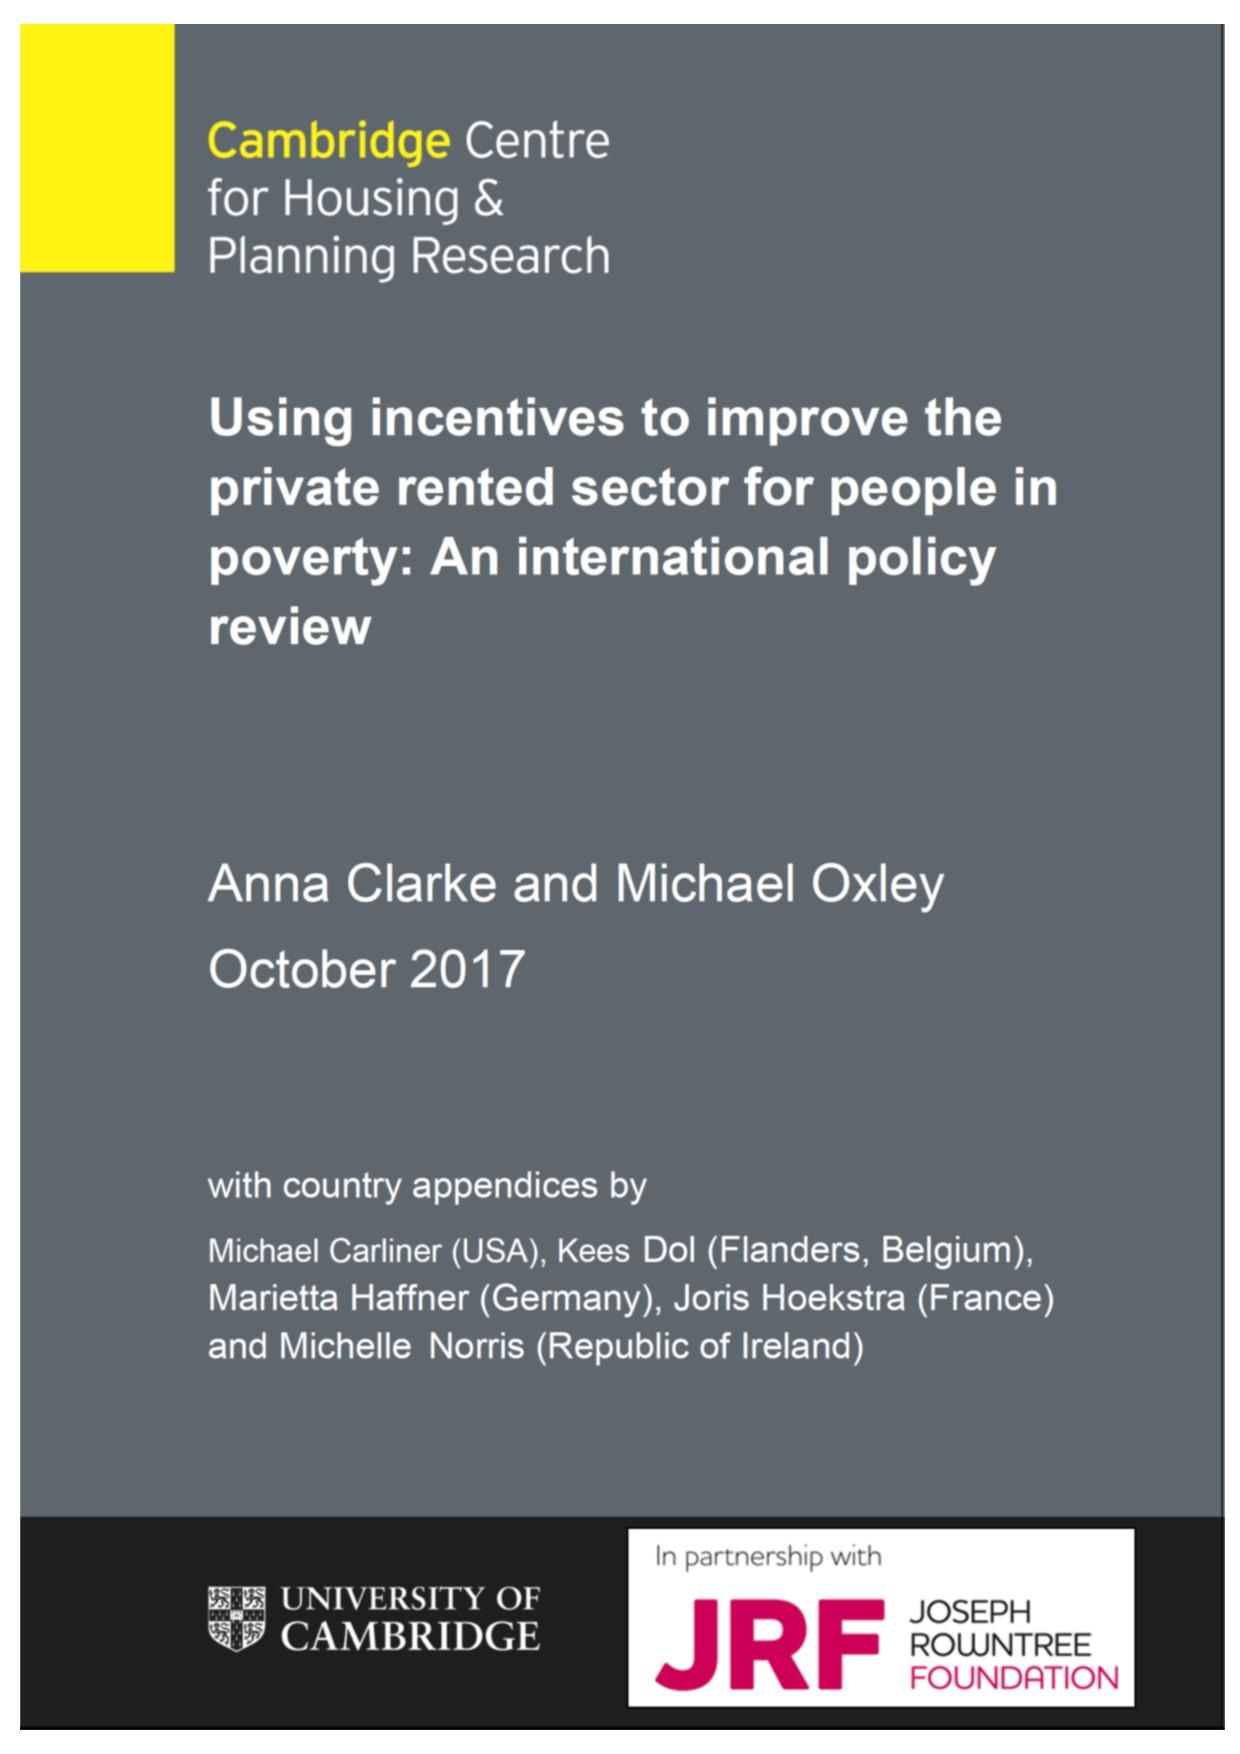 Using incentives to improve the PRS for people in poverty: international policy review